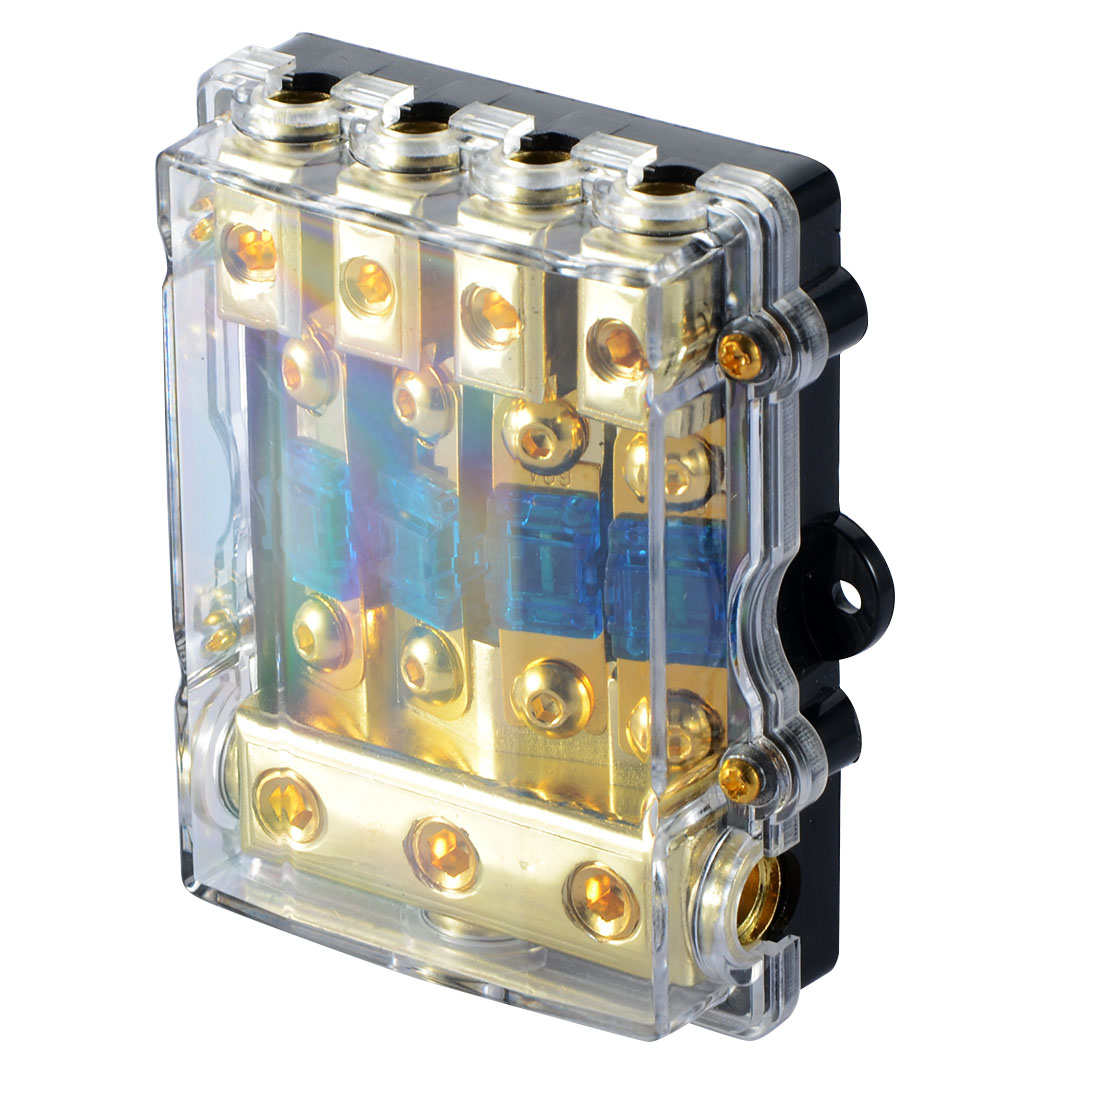 Good Deal 1pcs Universal Car Auto Vehicles Audio Amplifier 1 In 4 Home Fuse Box Amps Ways Out Holder